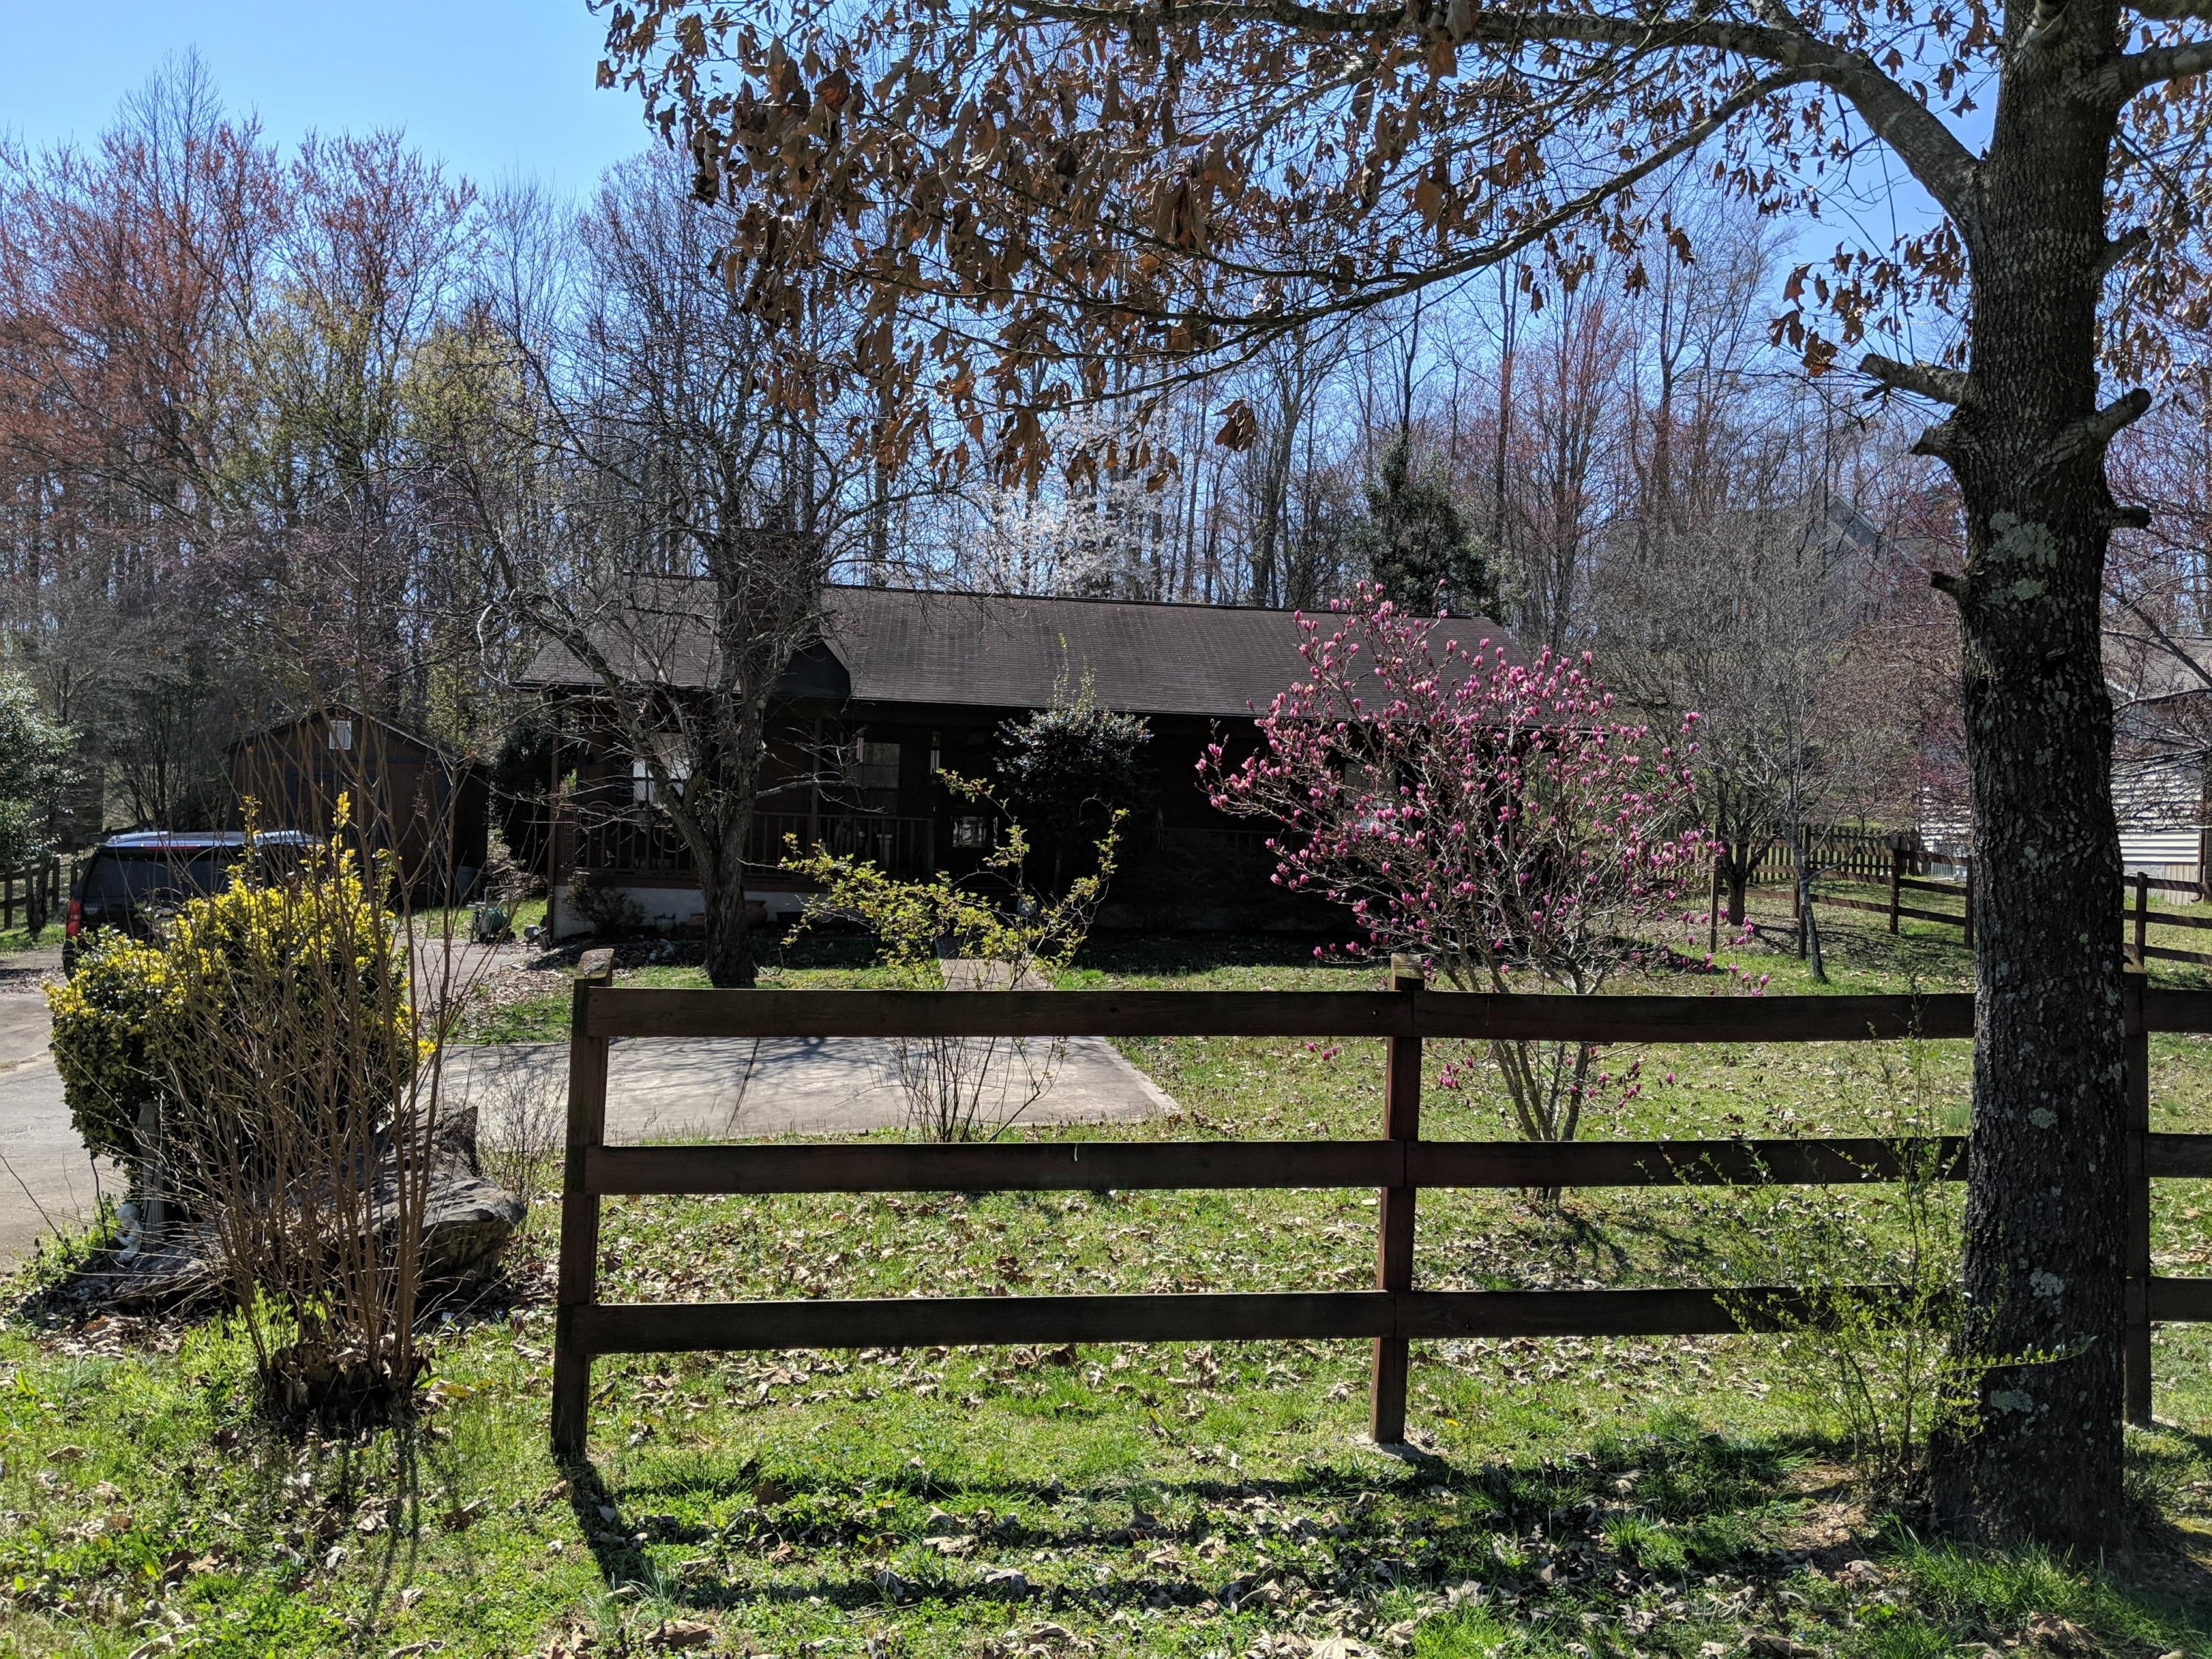 416 Lawnville Rd, Kingston, TN 37763